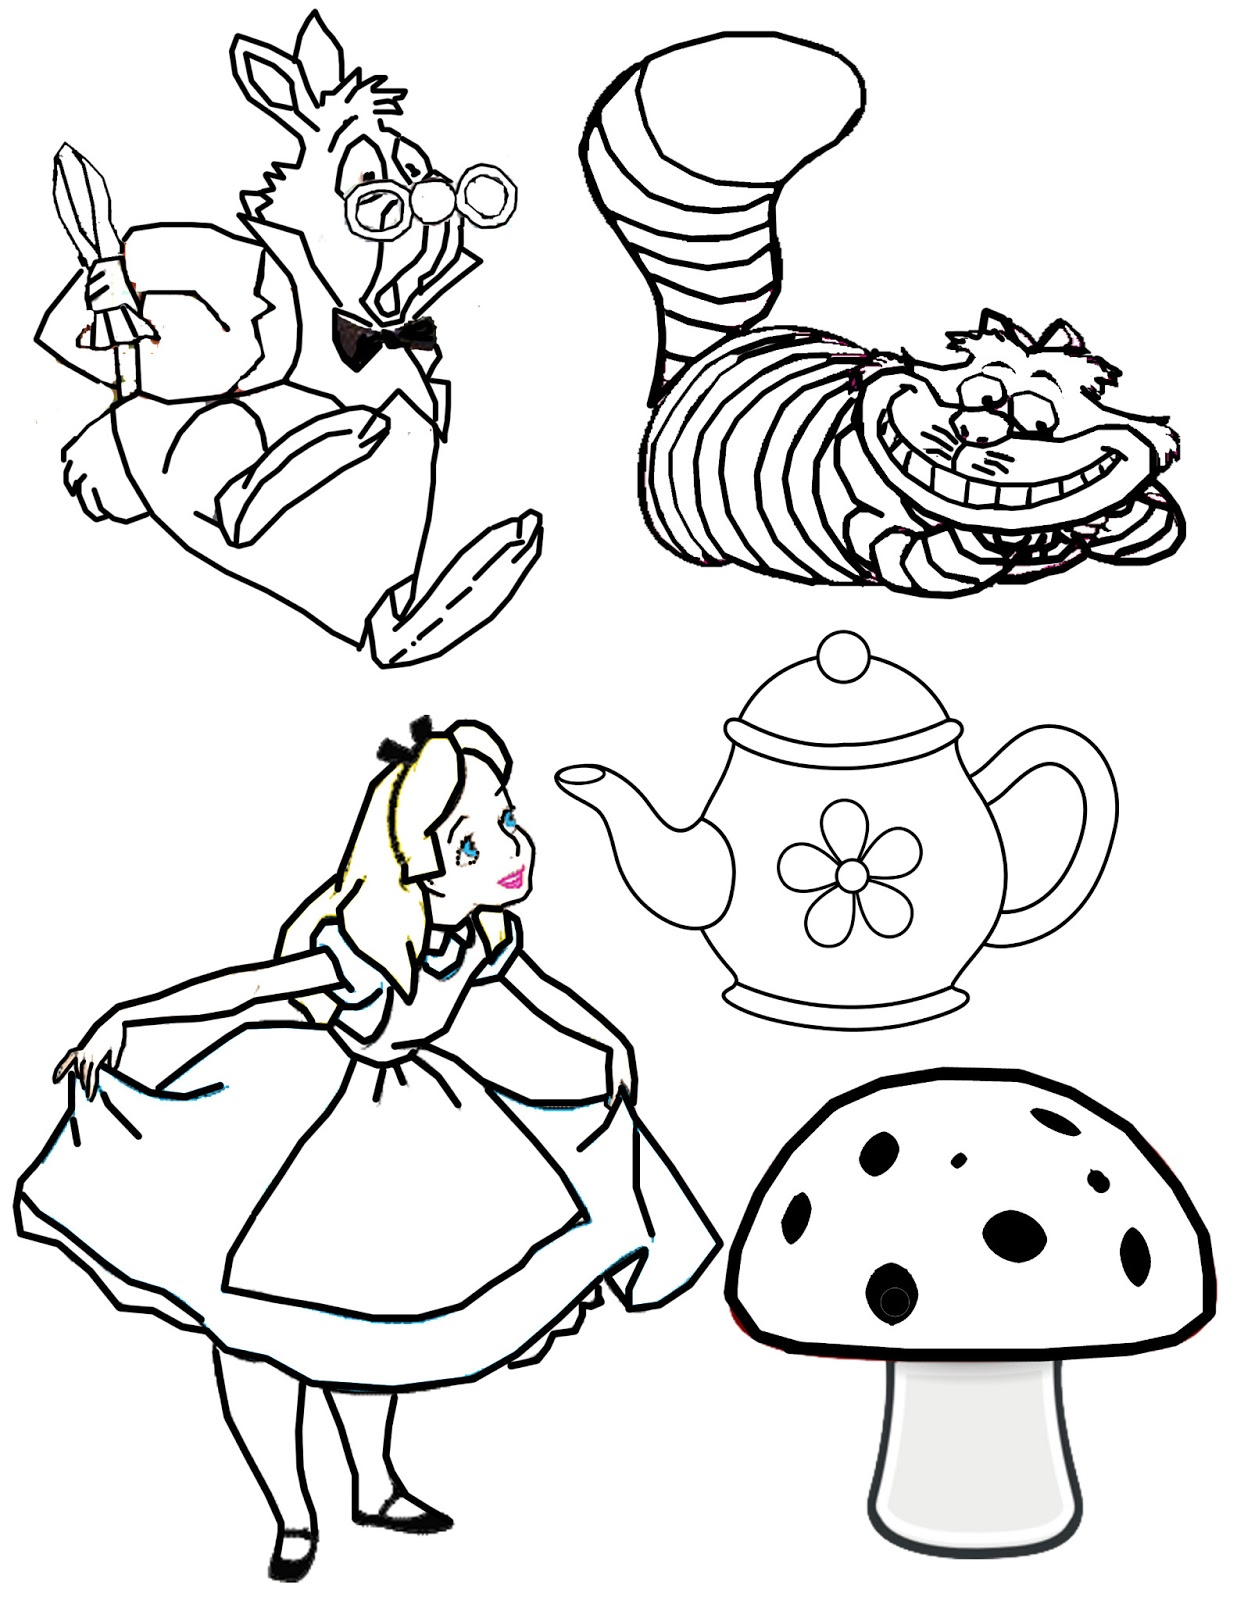 1237x1600 How To Draw Alice From Alice In Wonderland Step 8 Coloring Pages